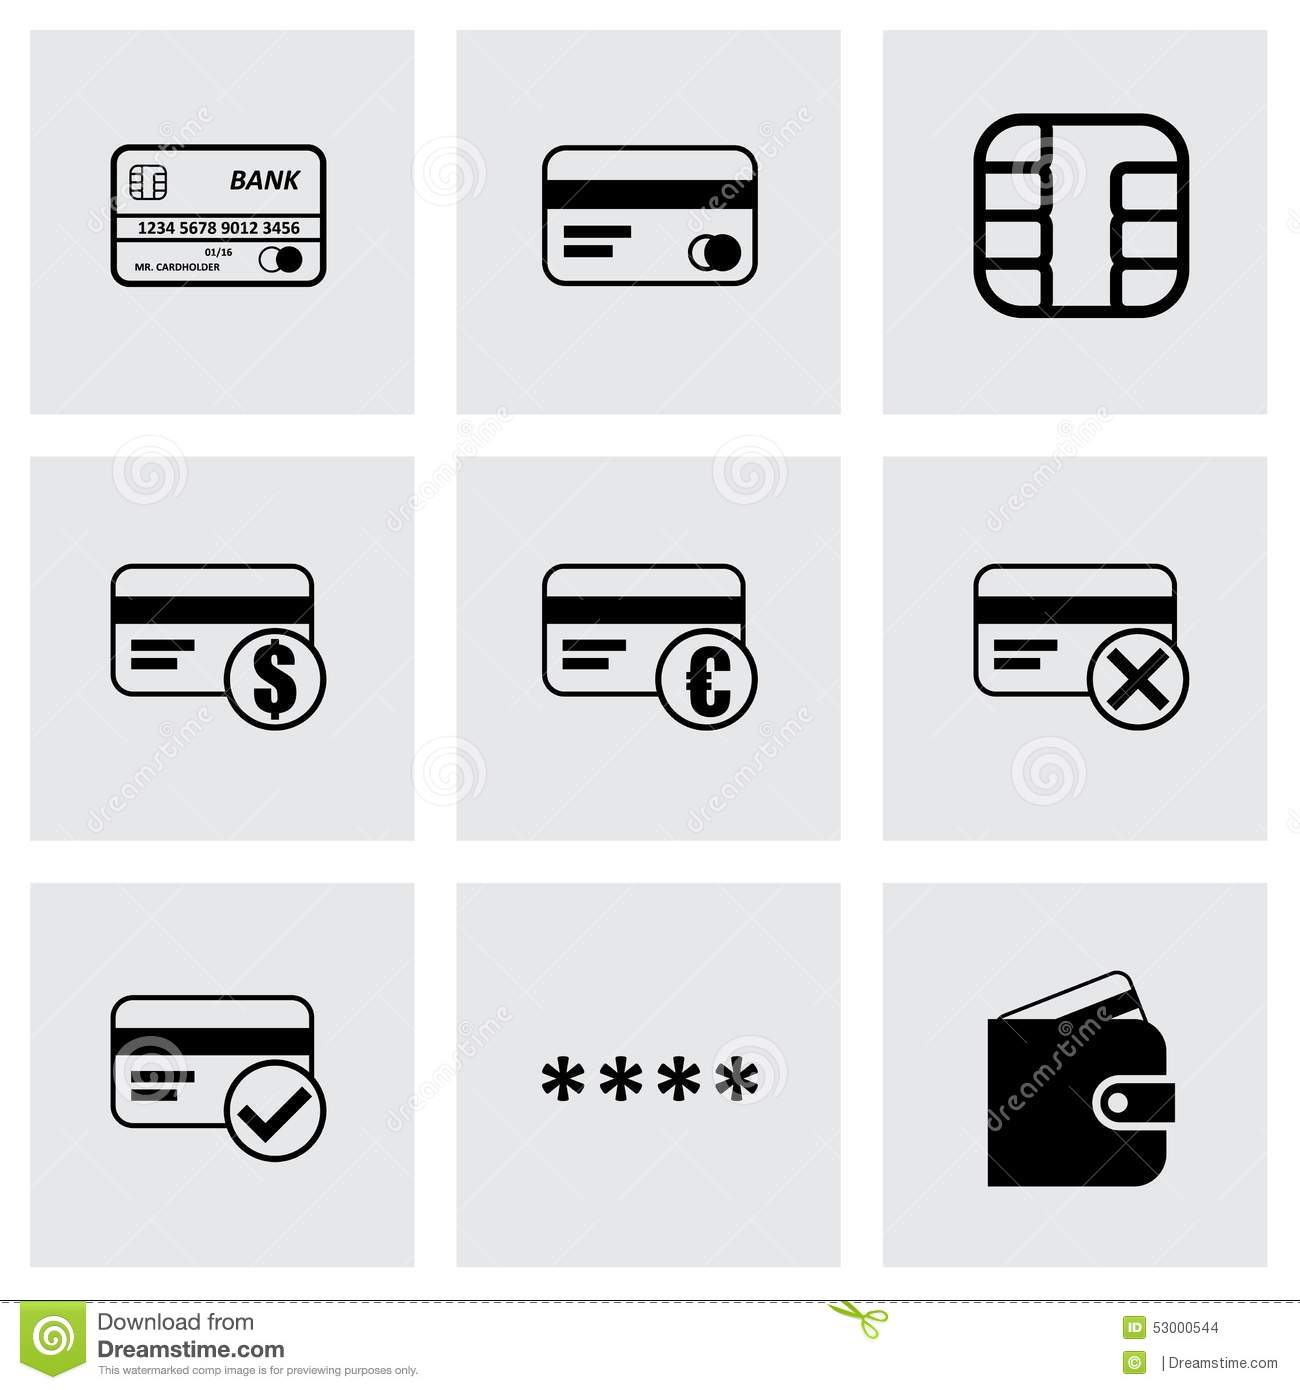 Vector Black Credit Card Eyes Icons Set Stock Vector - Image: 53000544